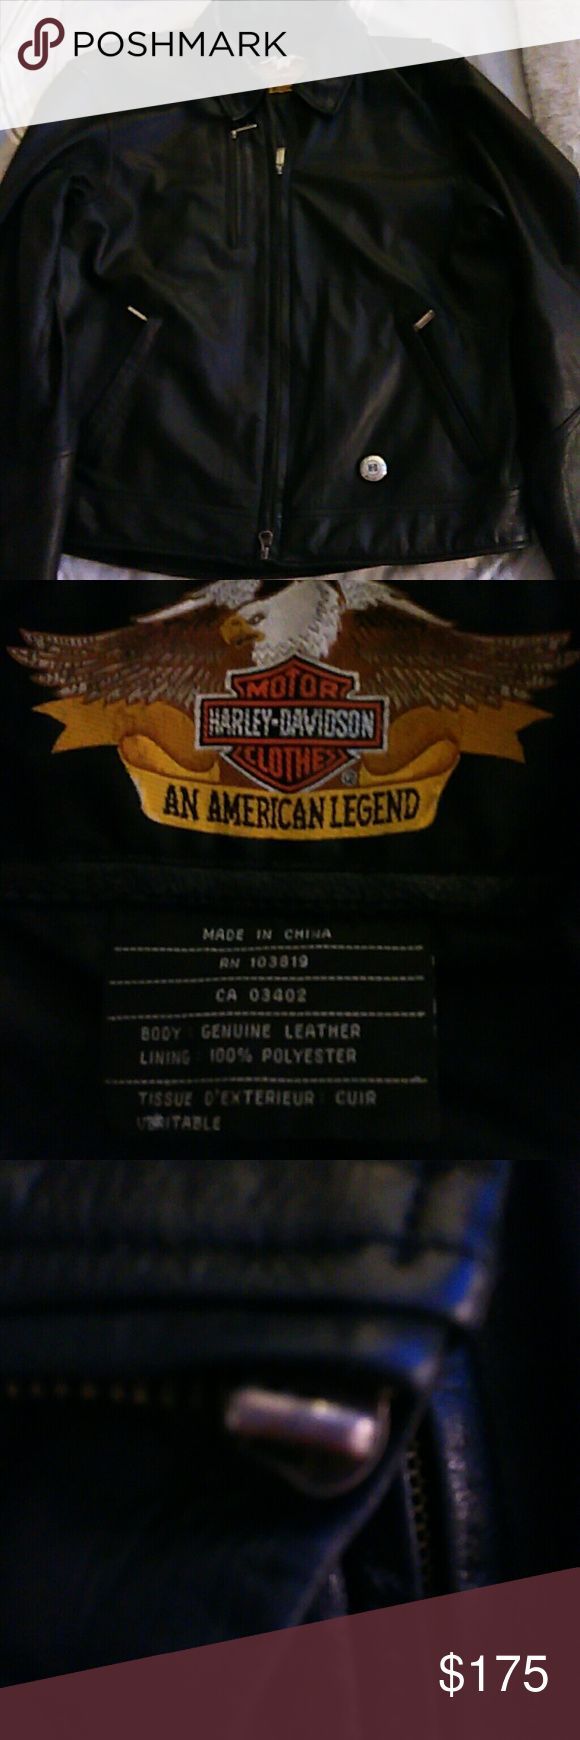 Authentic Harley Davidson leather jacket. Men's Medium leather jacket,worn maybe 10 times.Is missing zipper pull on the arm. Harley-Davidson Jackets & Coats